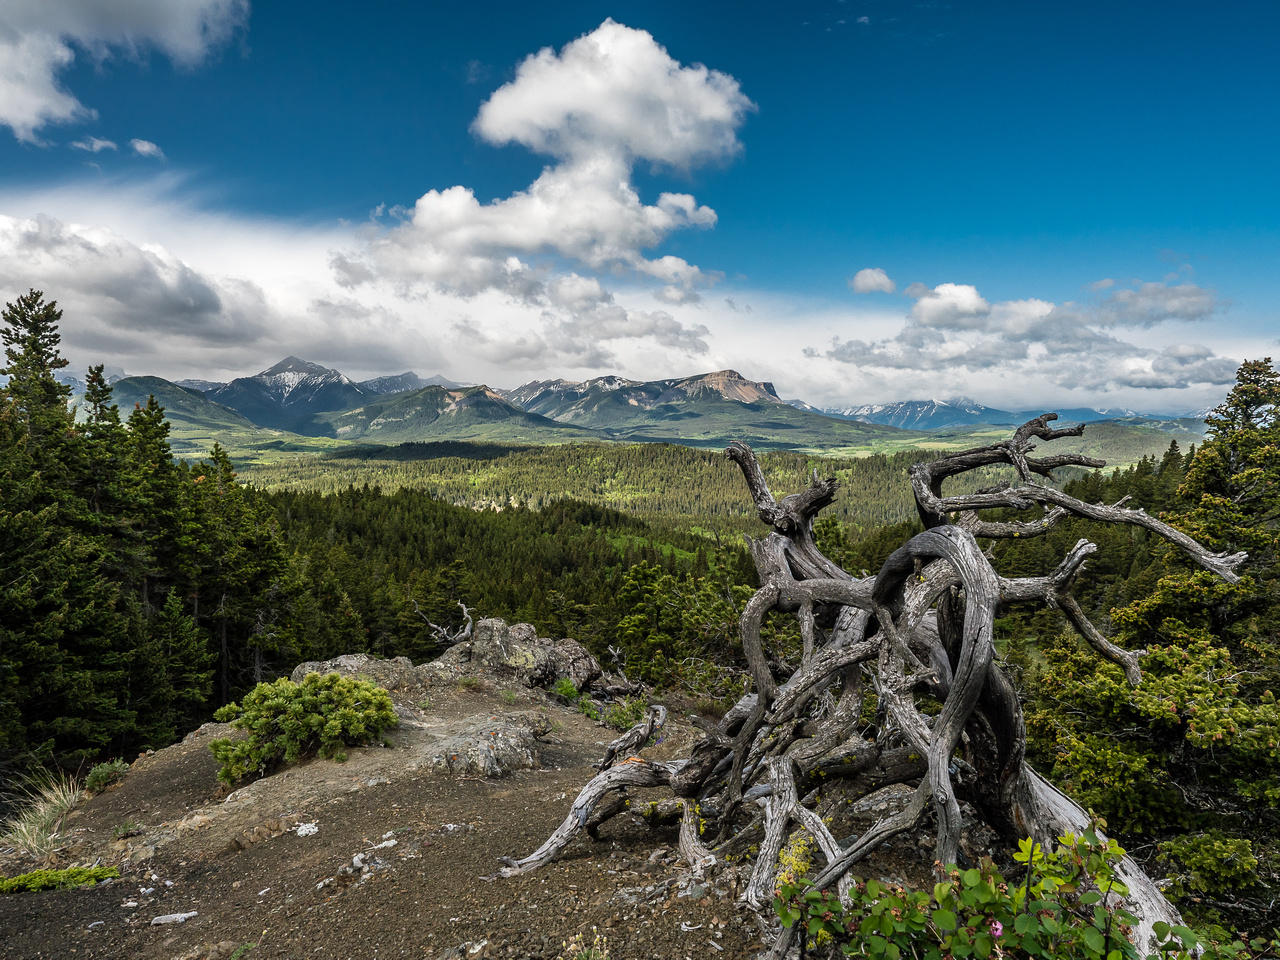 A classic Castle Wilderness scene with a gnarled, beat down tree in the foreground and mountains in the background, including Table, Syncline and Southfork.